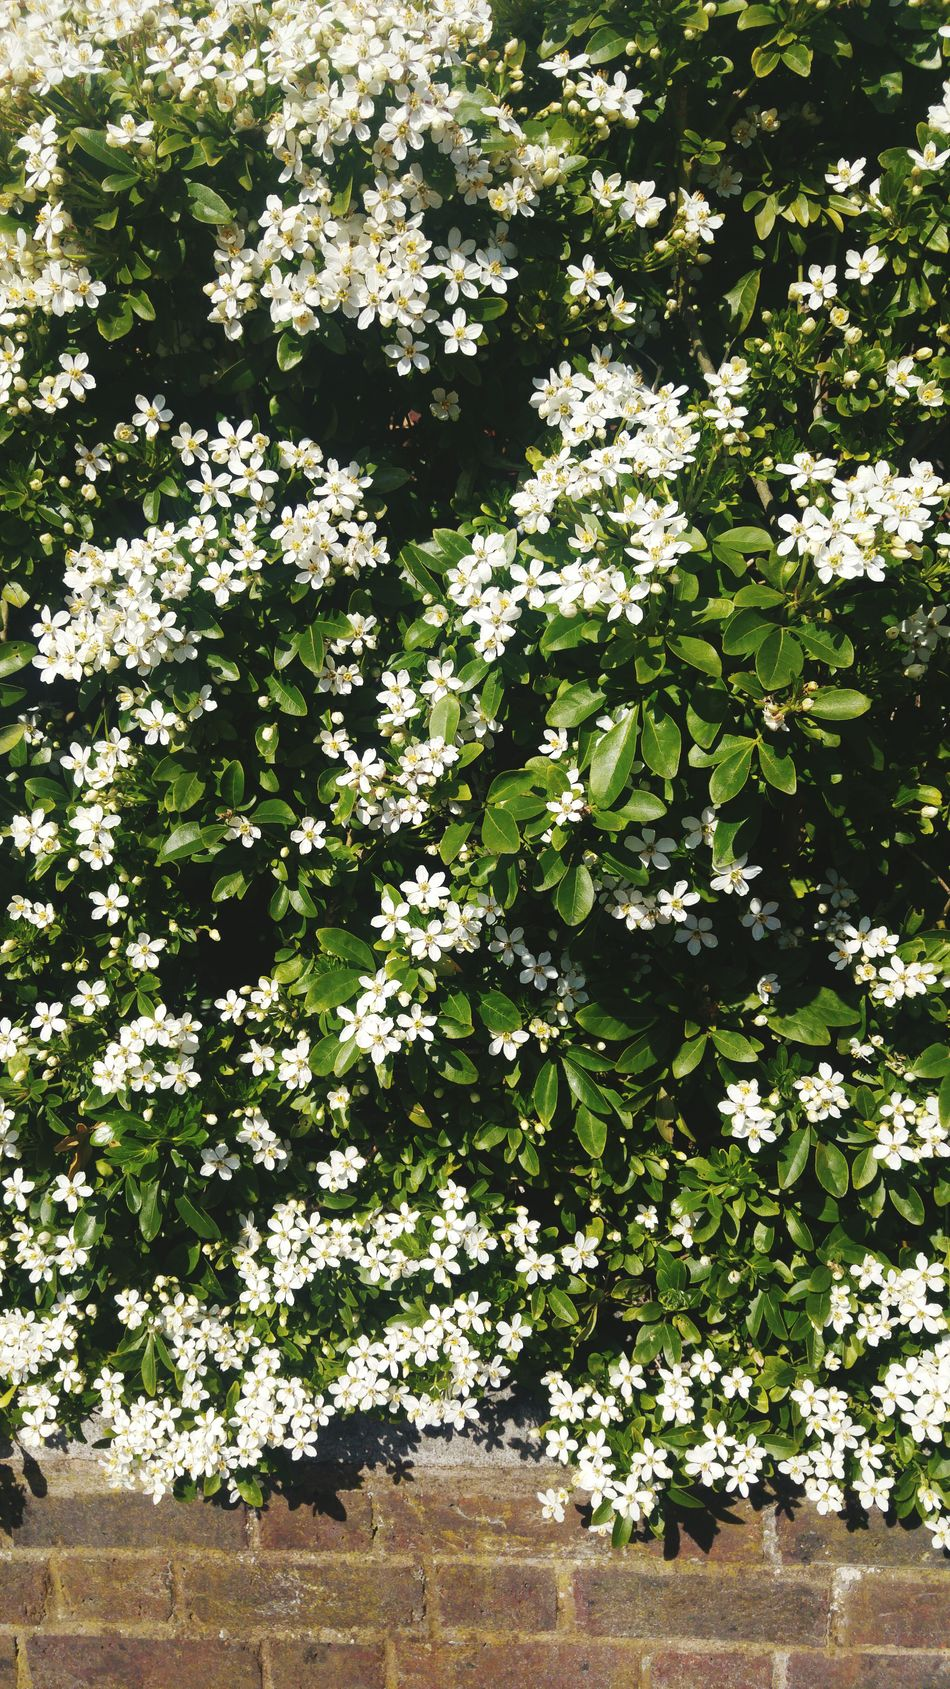 Nature Growth Flower No People Beauty In Nature Tree Green Color Plant Outdoors Day Close-up Fragility Freshness Flora Fauna White And Green Brick Work Spring Flowers Spring Photography